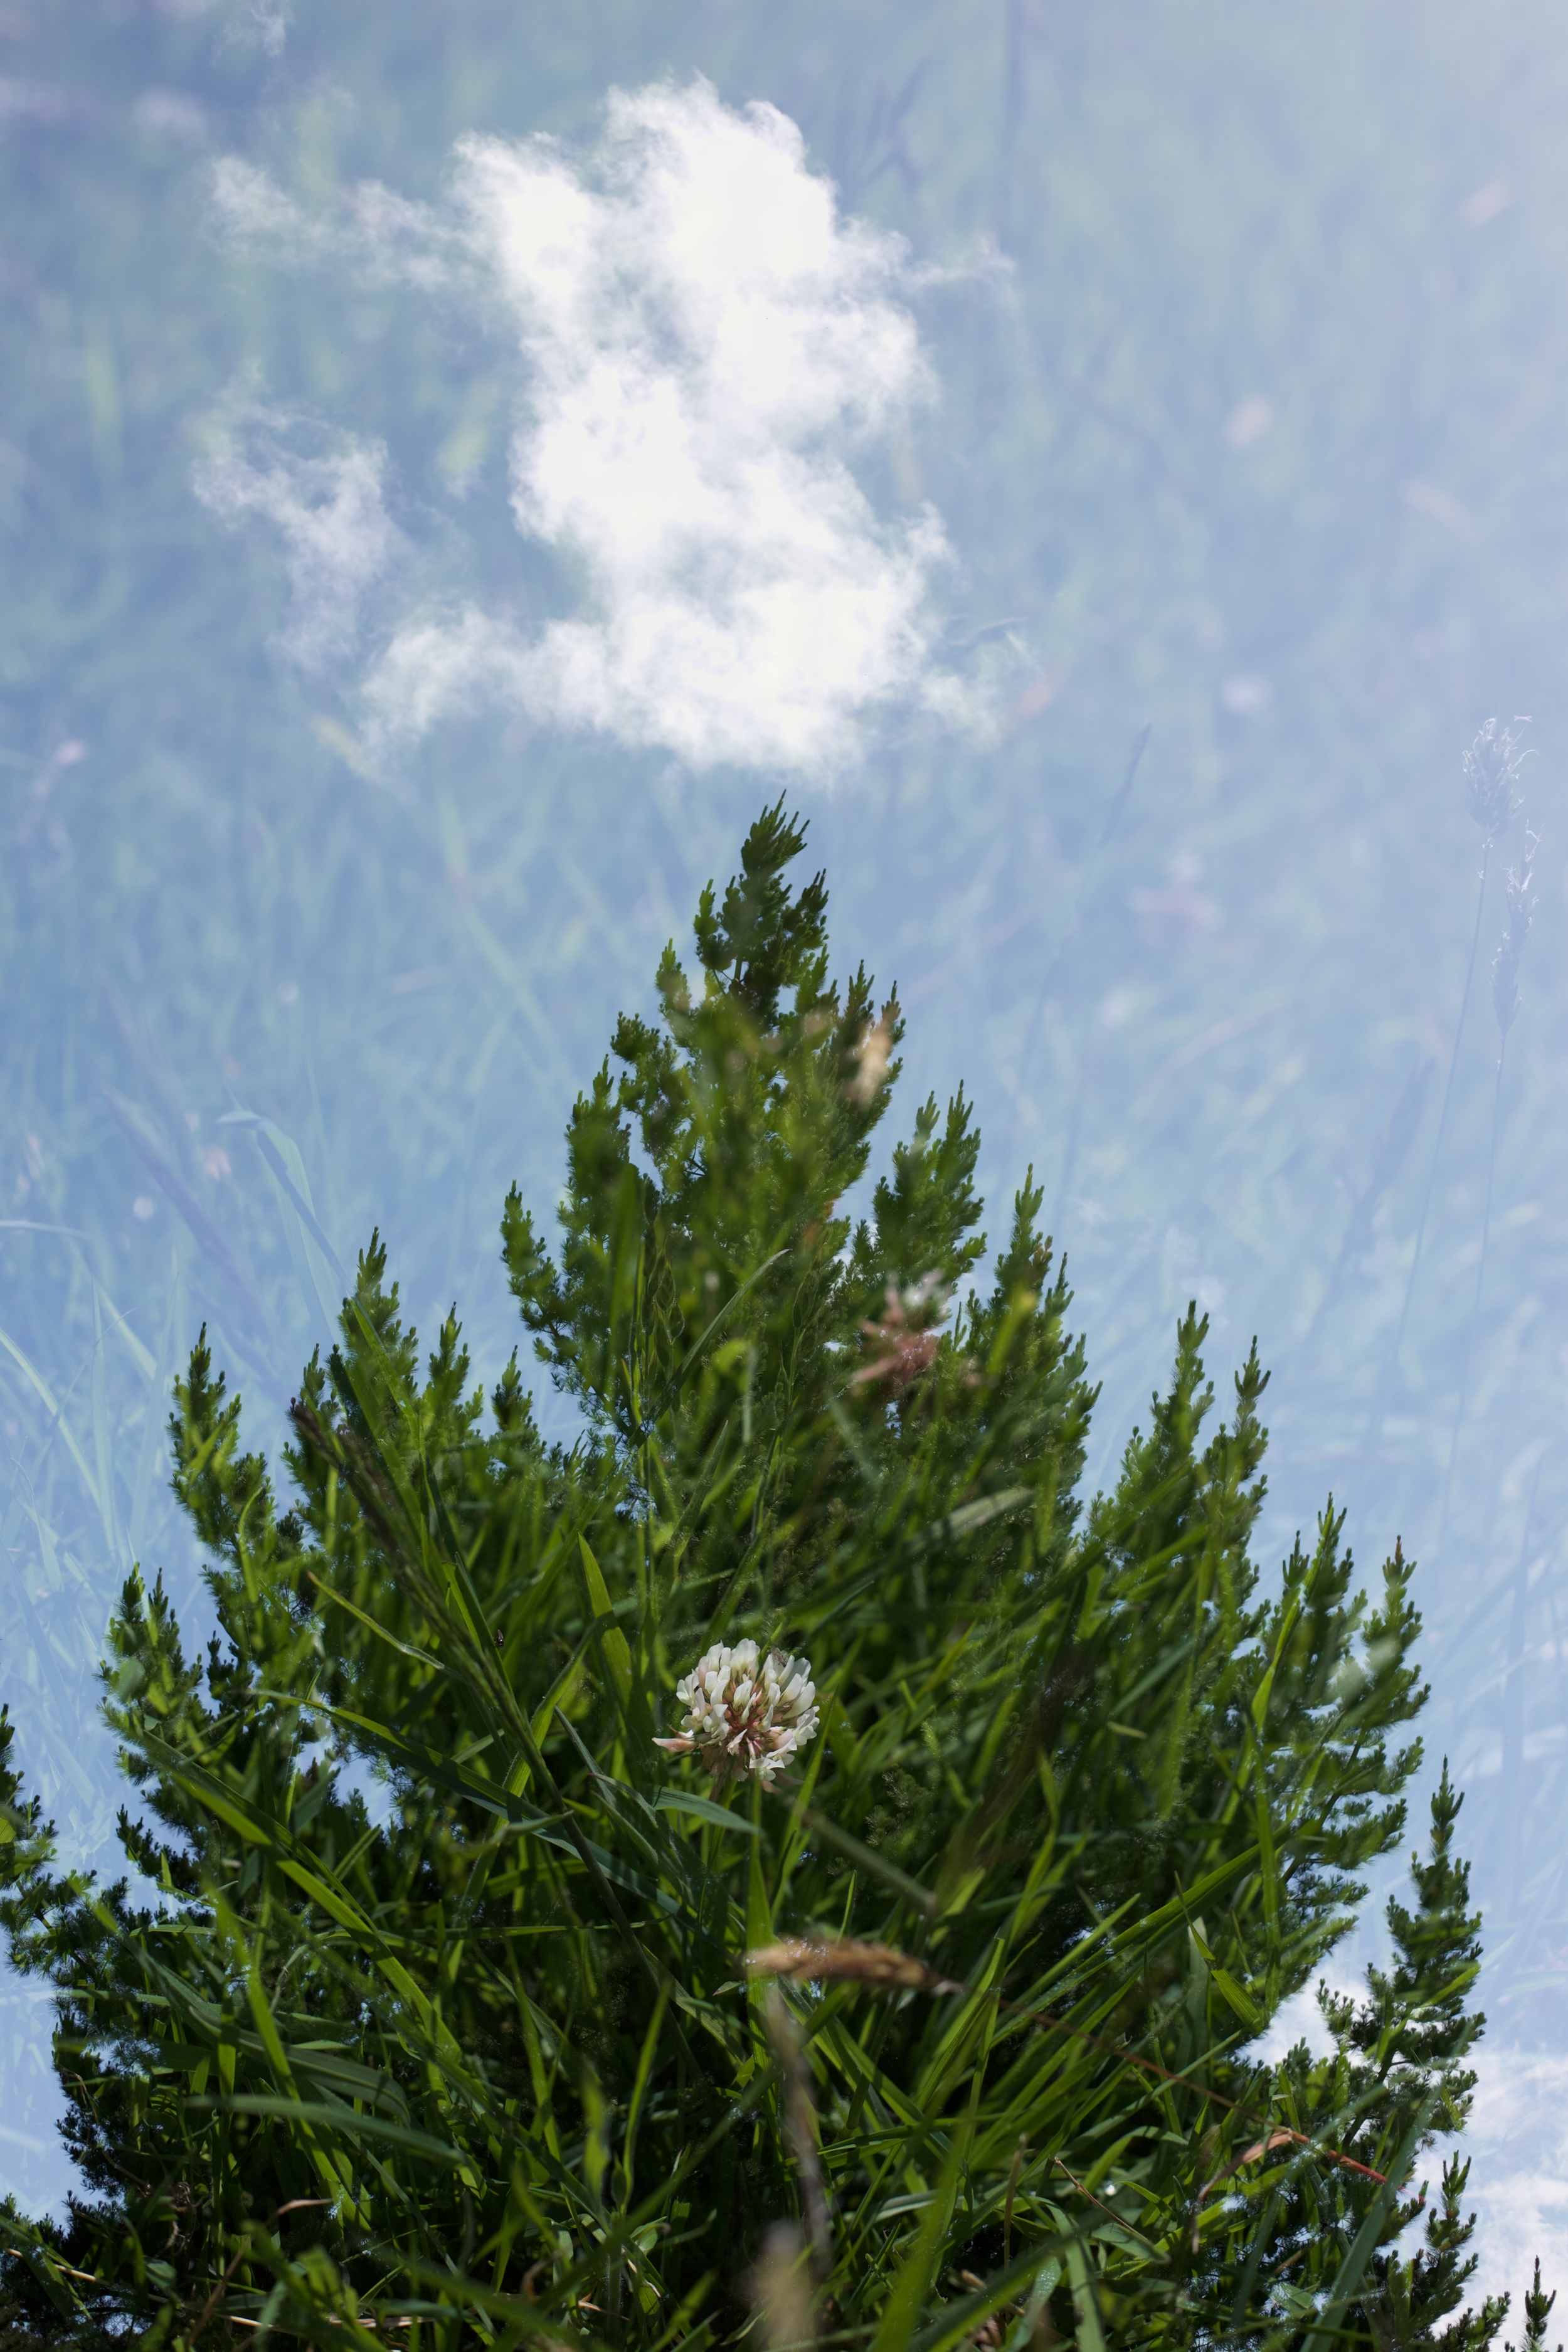 A clover flower, a pine tree and a cloud.